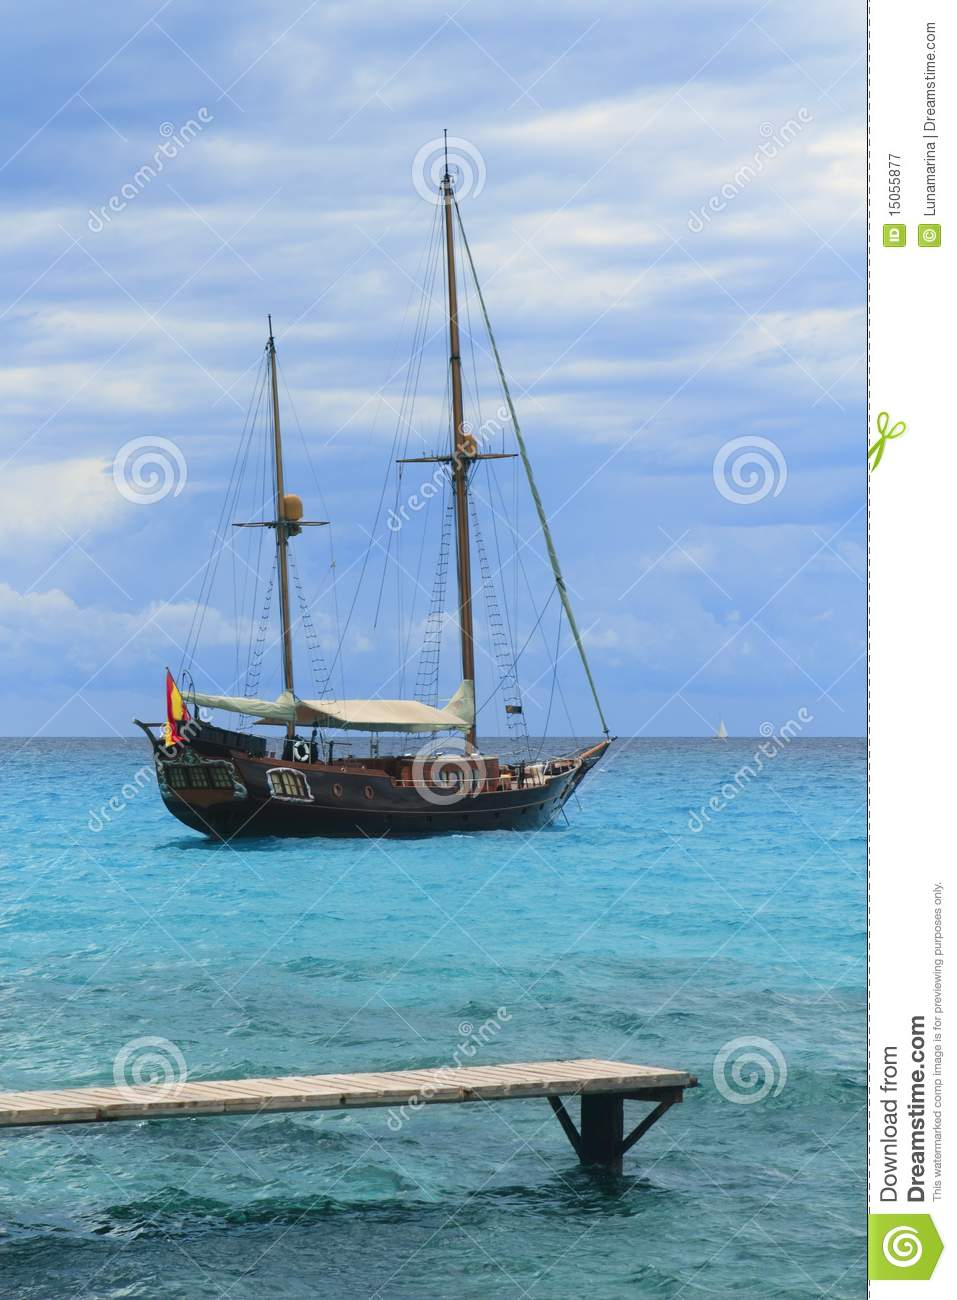 Pirates Inspired Wood Sailboat Anchored Turquoise Royalty Free Stock ...